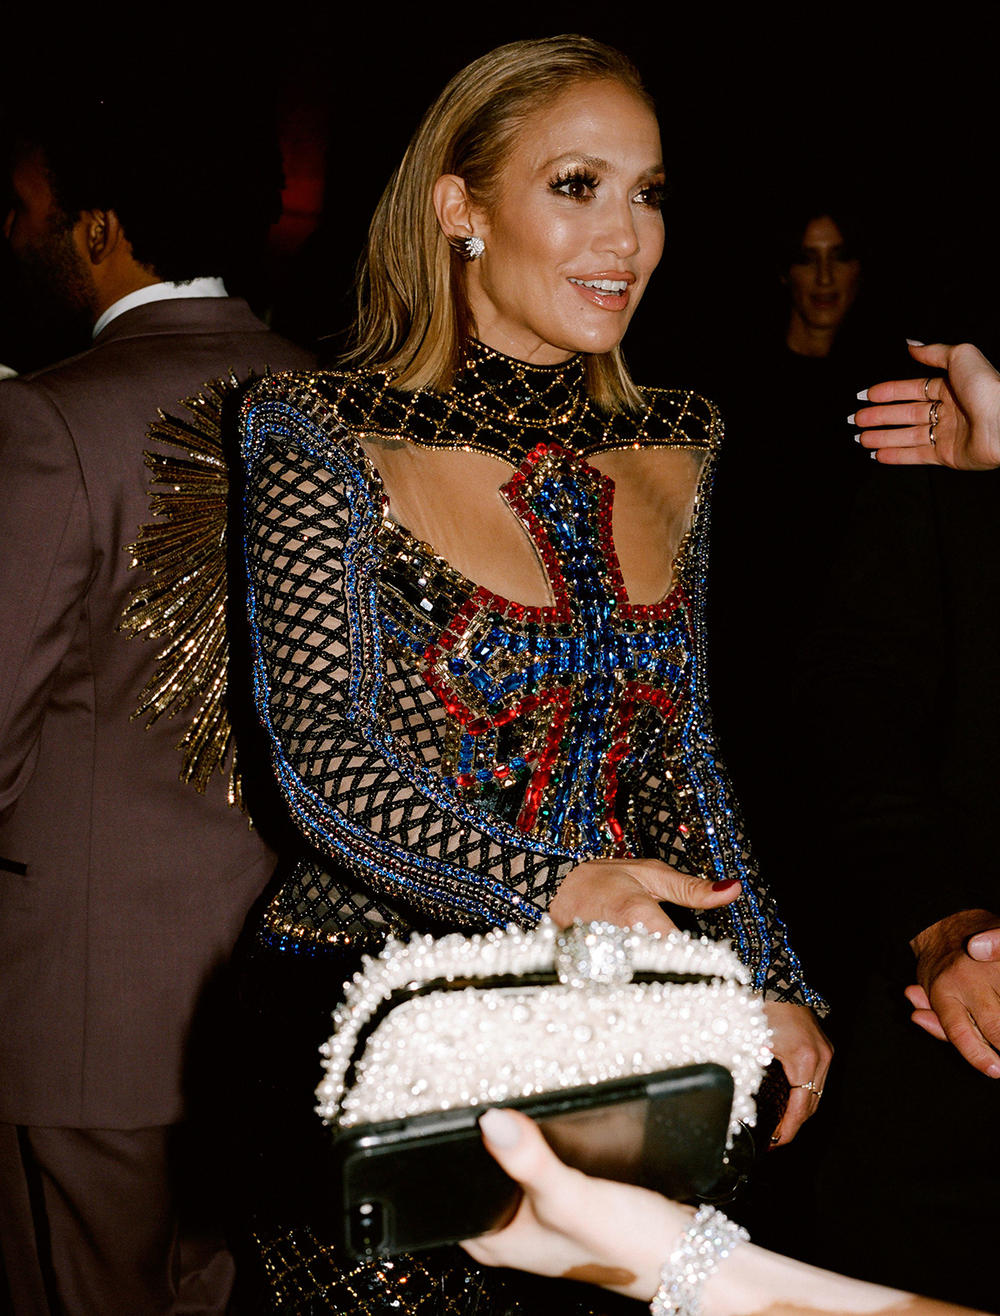 Met Gala 2018 Jennifer Lopez Cross Dress Candid Film Photo